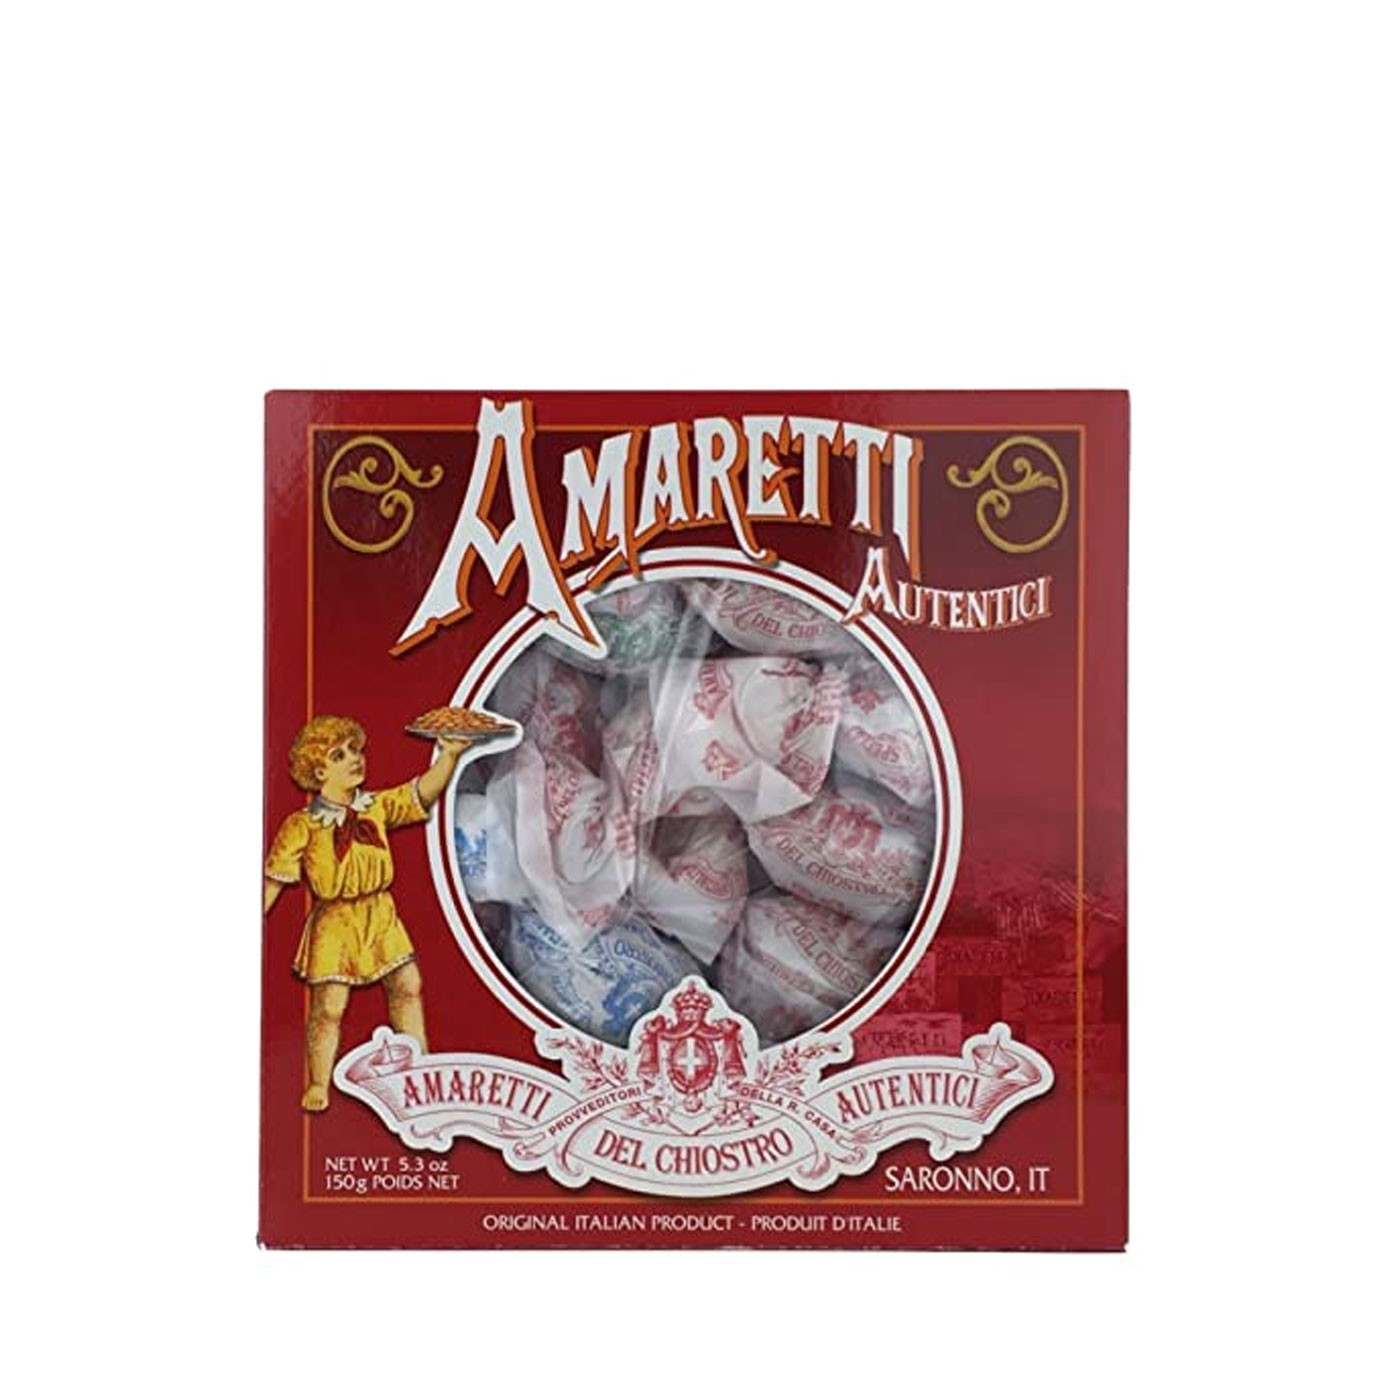 Assorted Amaretti Cookies in Box 5.2 oz